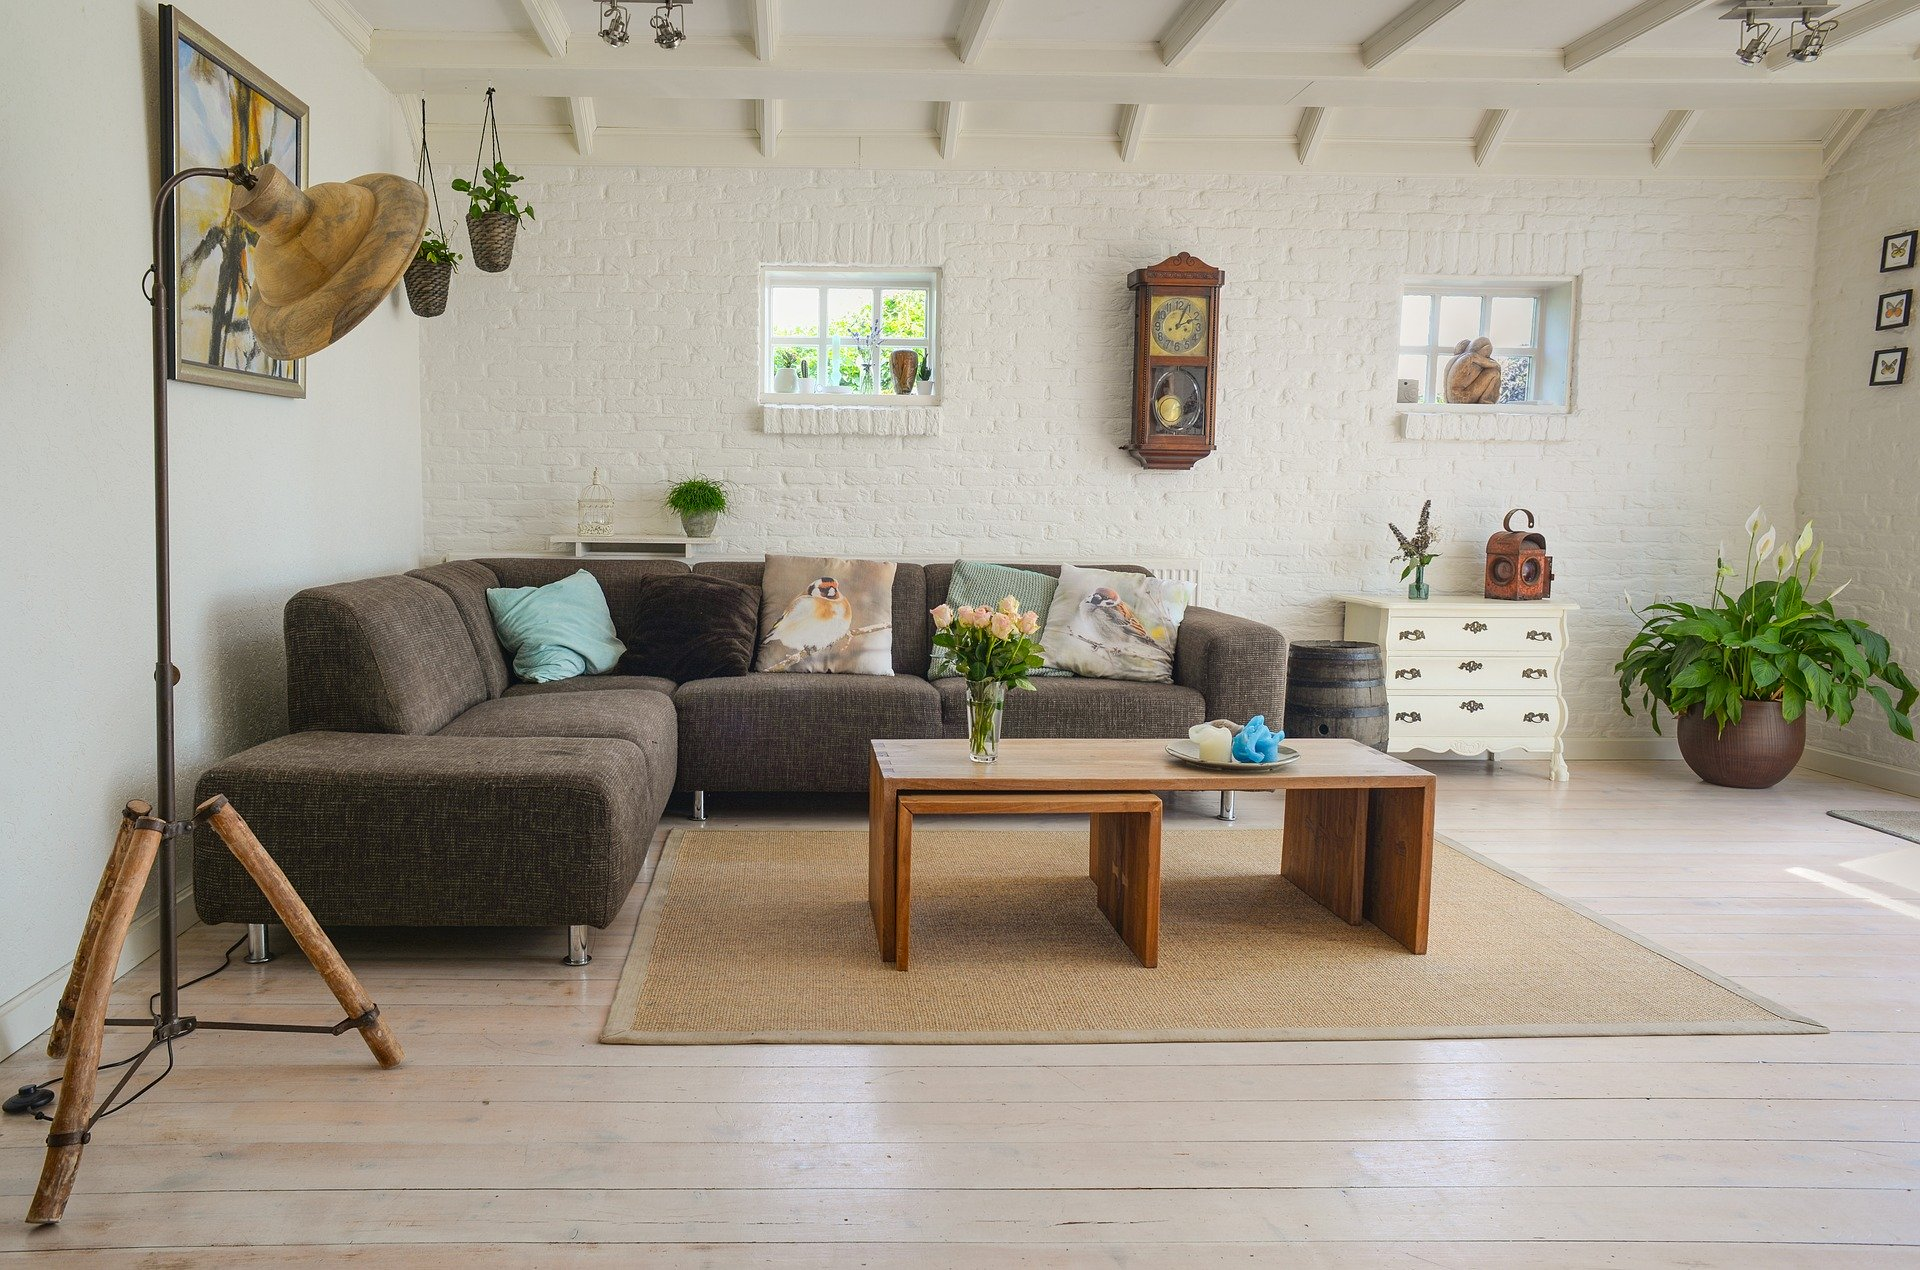 living room with a brown couch